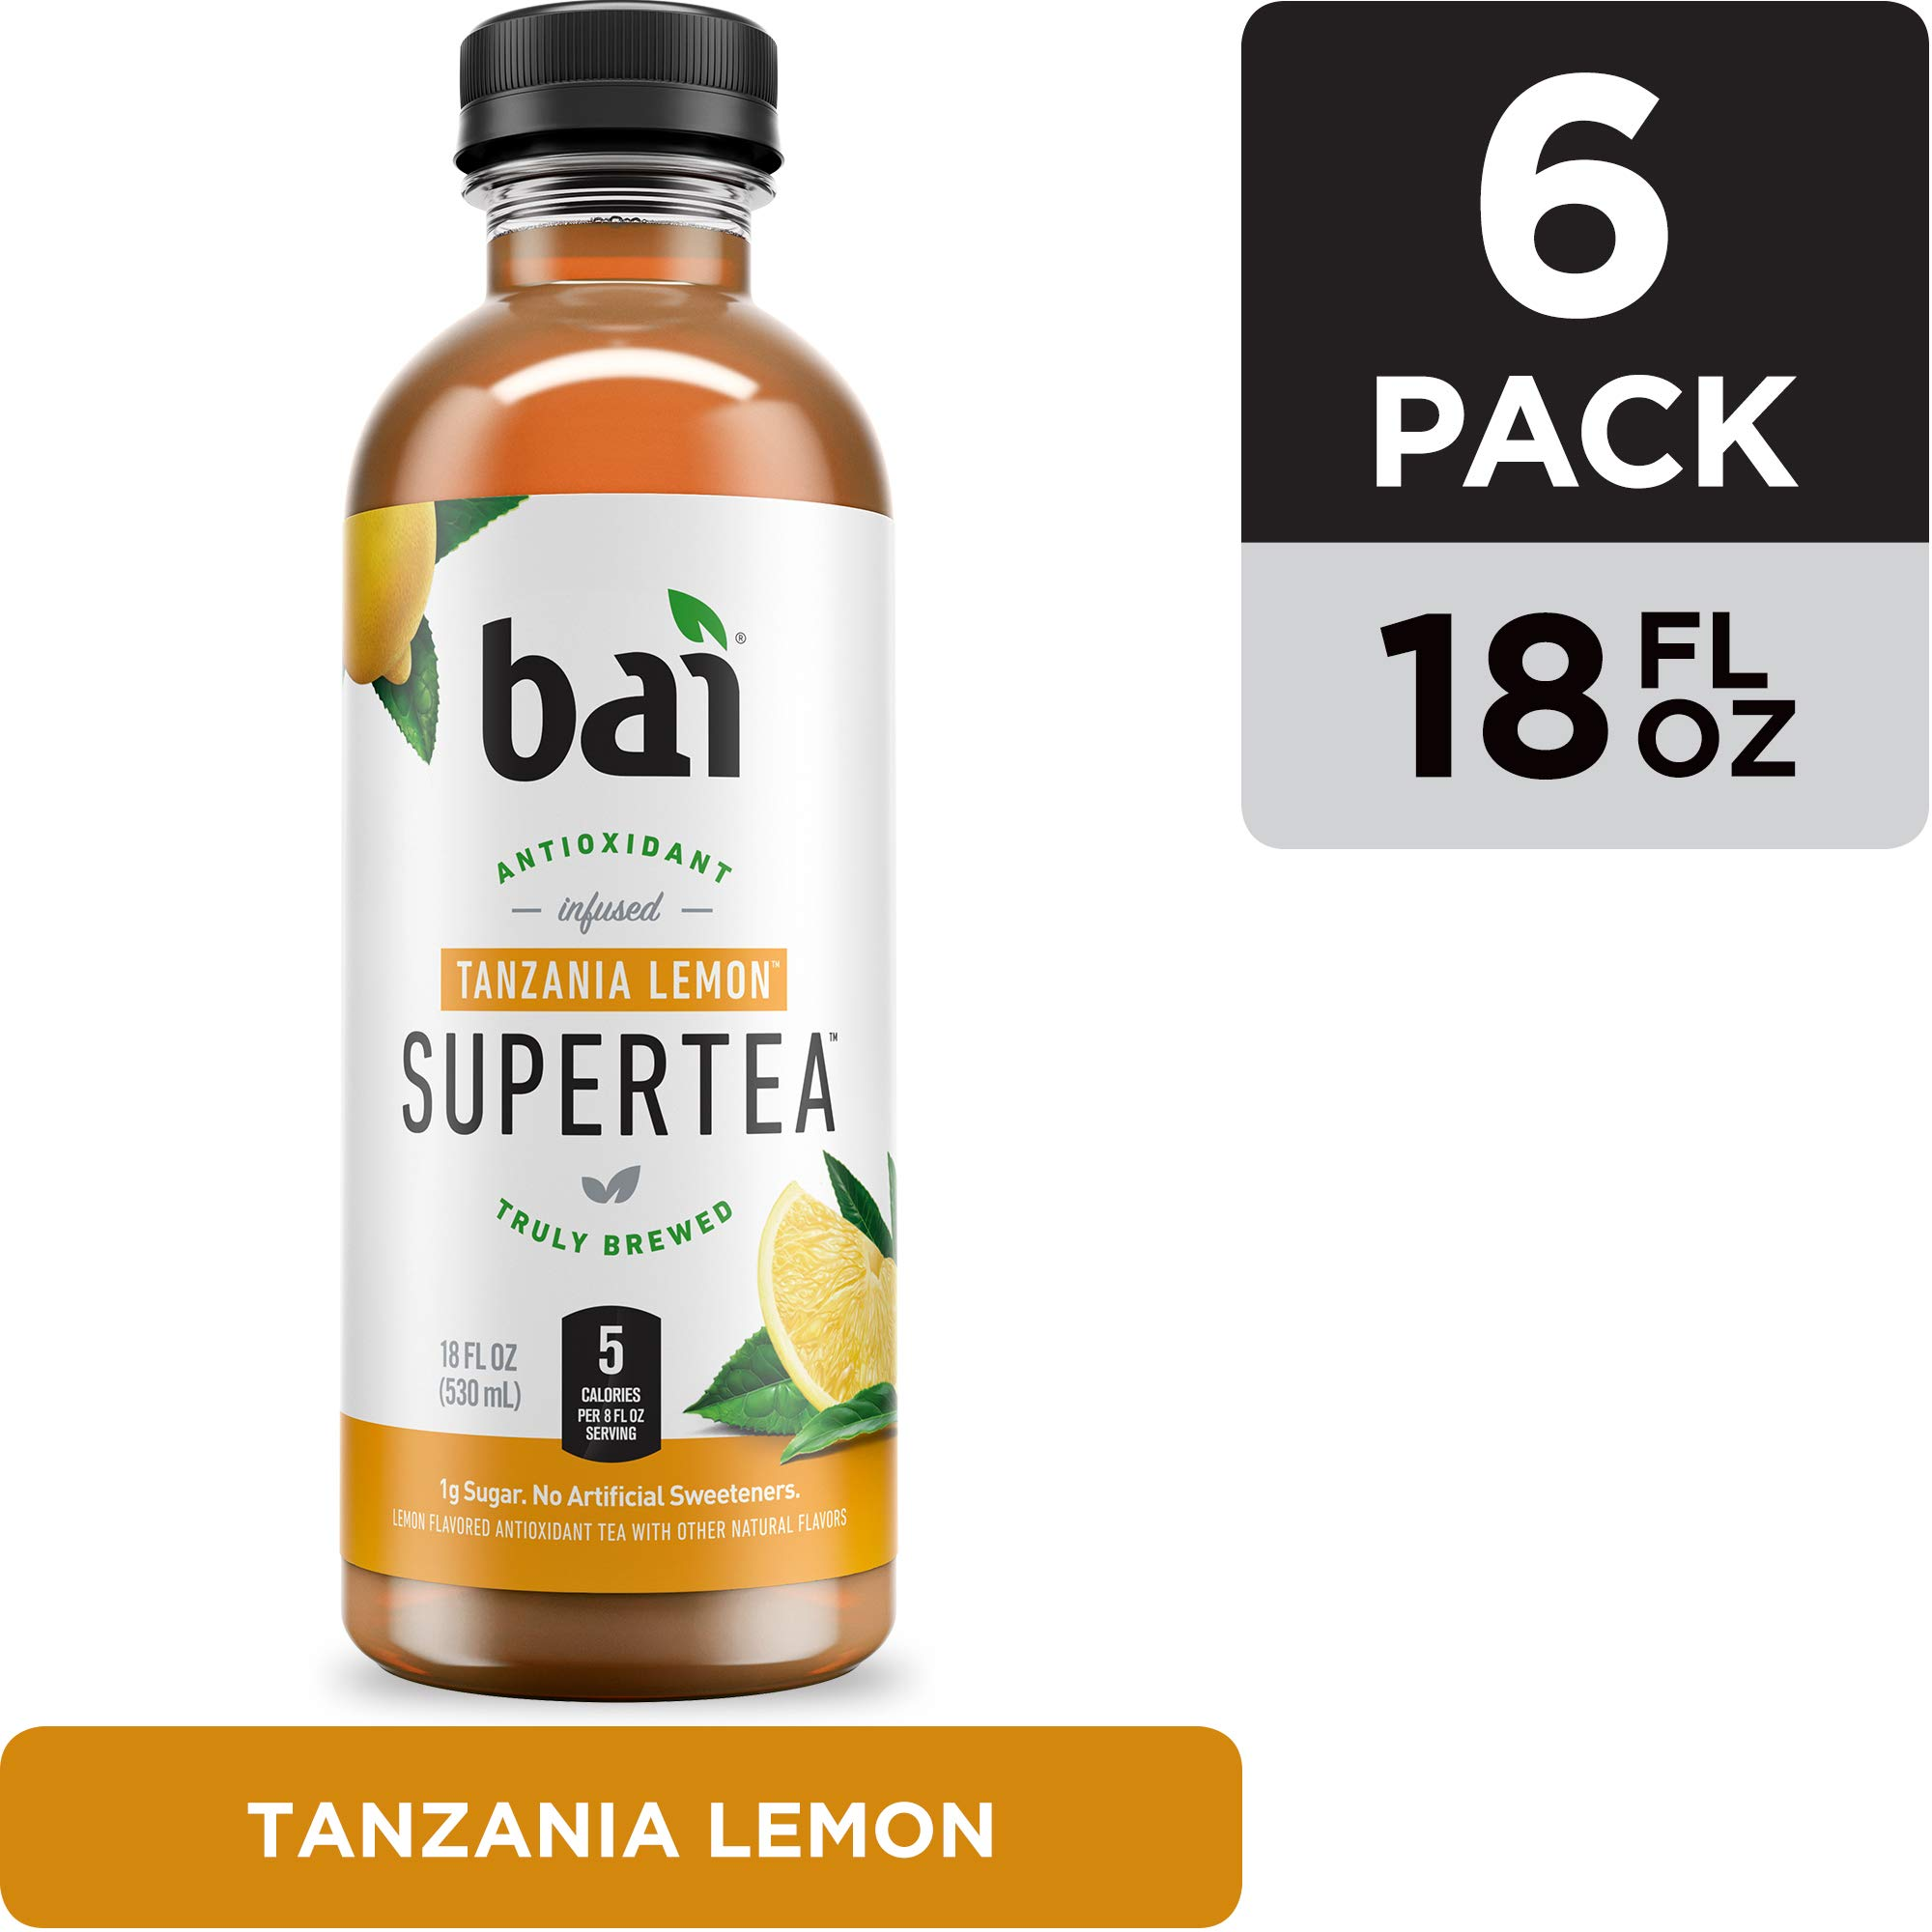 Bai Iced Tea, Tanzania Lemon, Antioxidant Infused Supertea, Crafted with Real Tea (Black Tea, White Tea), 18 Fluid Ounce Bottles, 6 count by bai